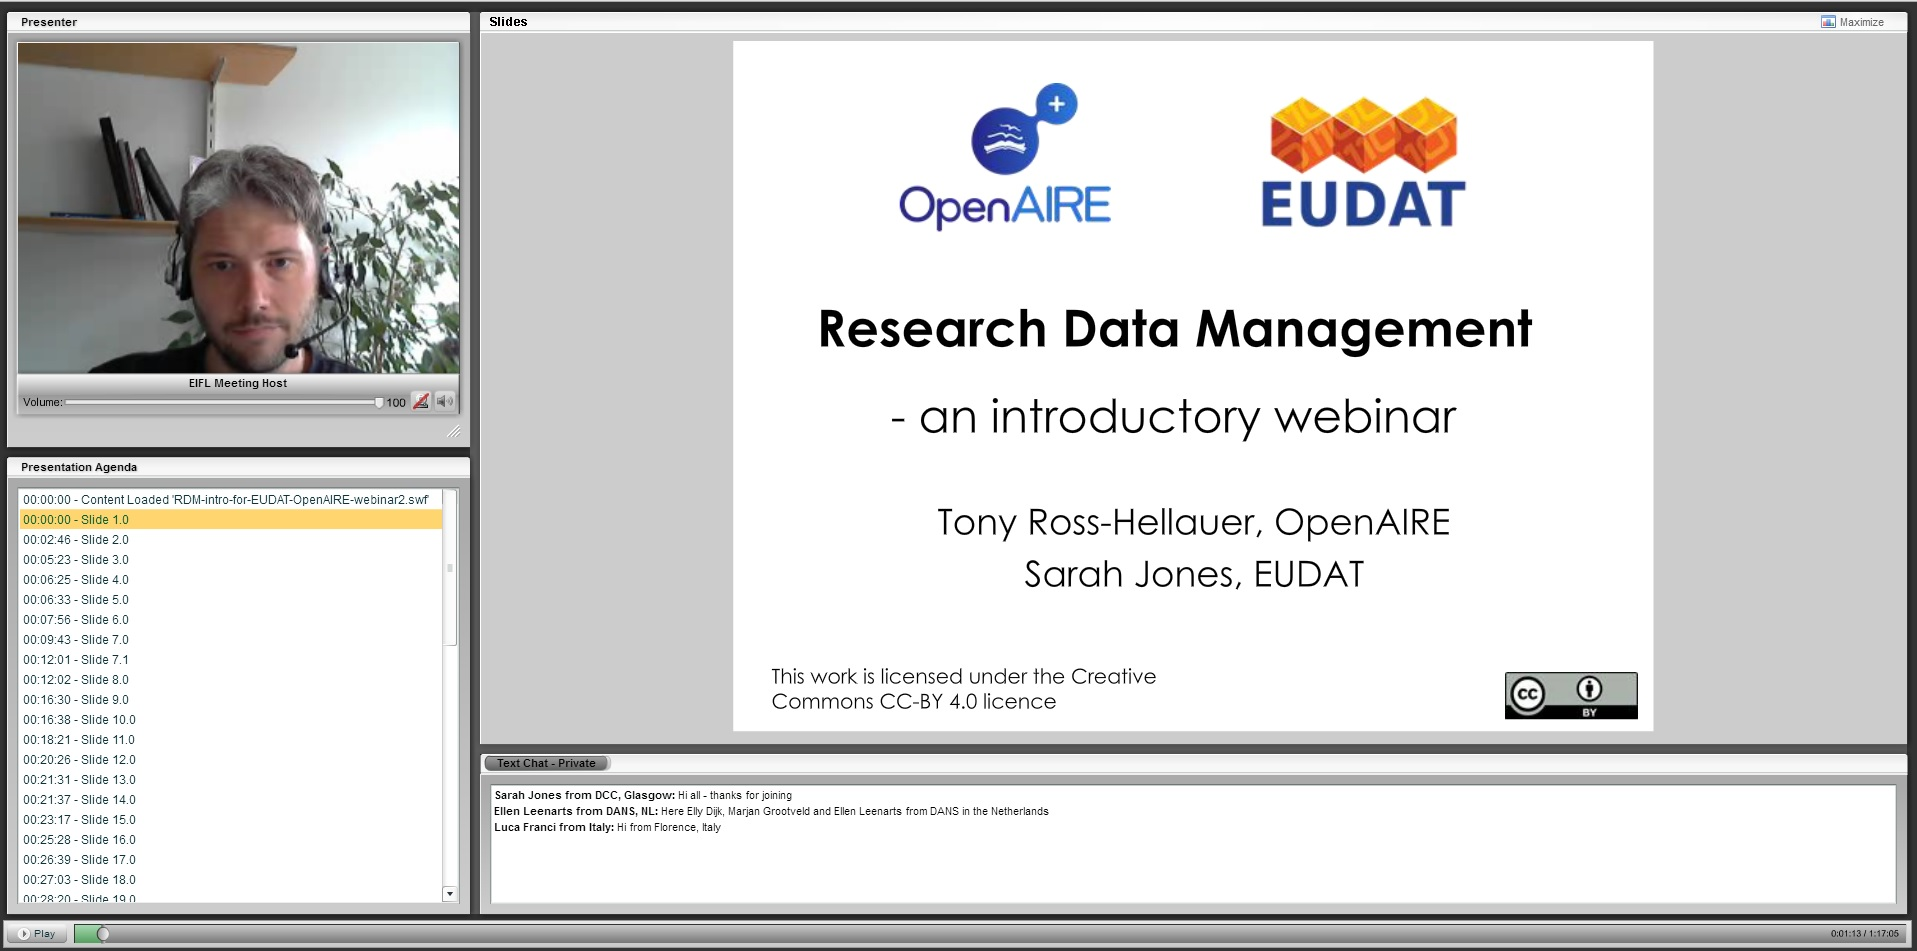 Research Data Management: An introductory Webinar from OpenAIRE and EUDAT